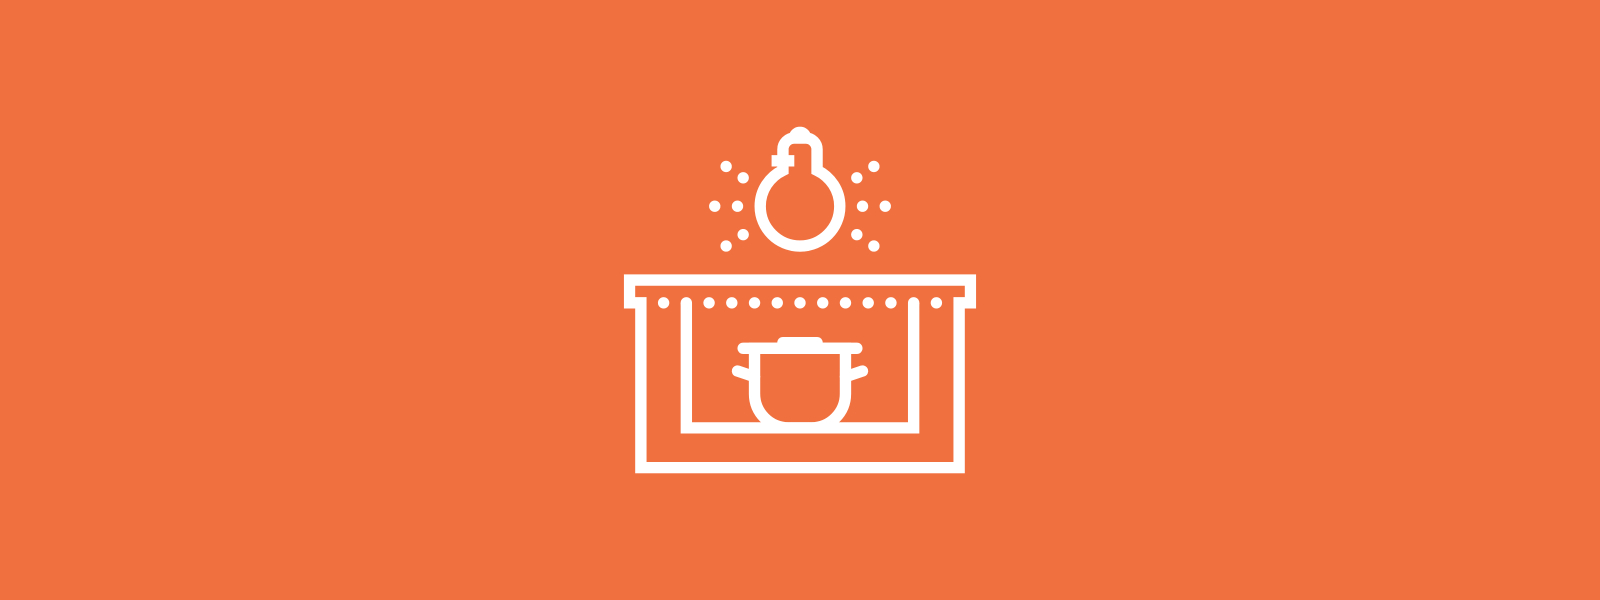 Icon background of cooking stove